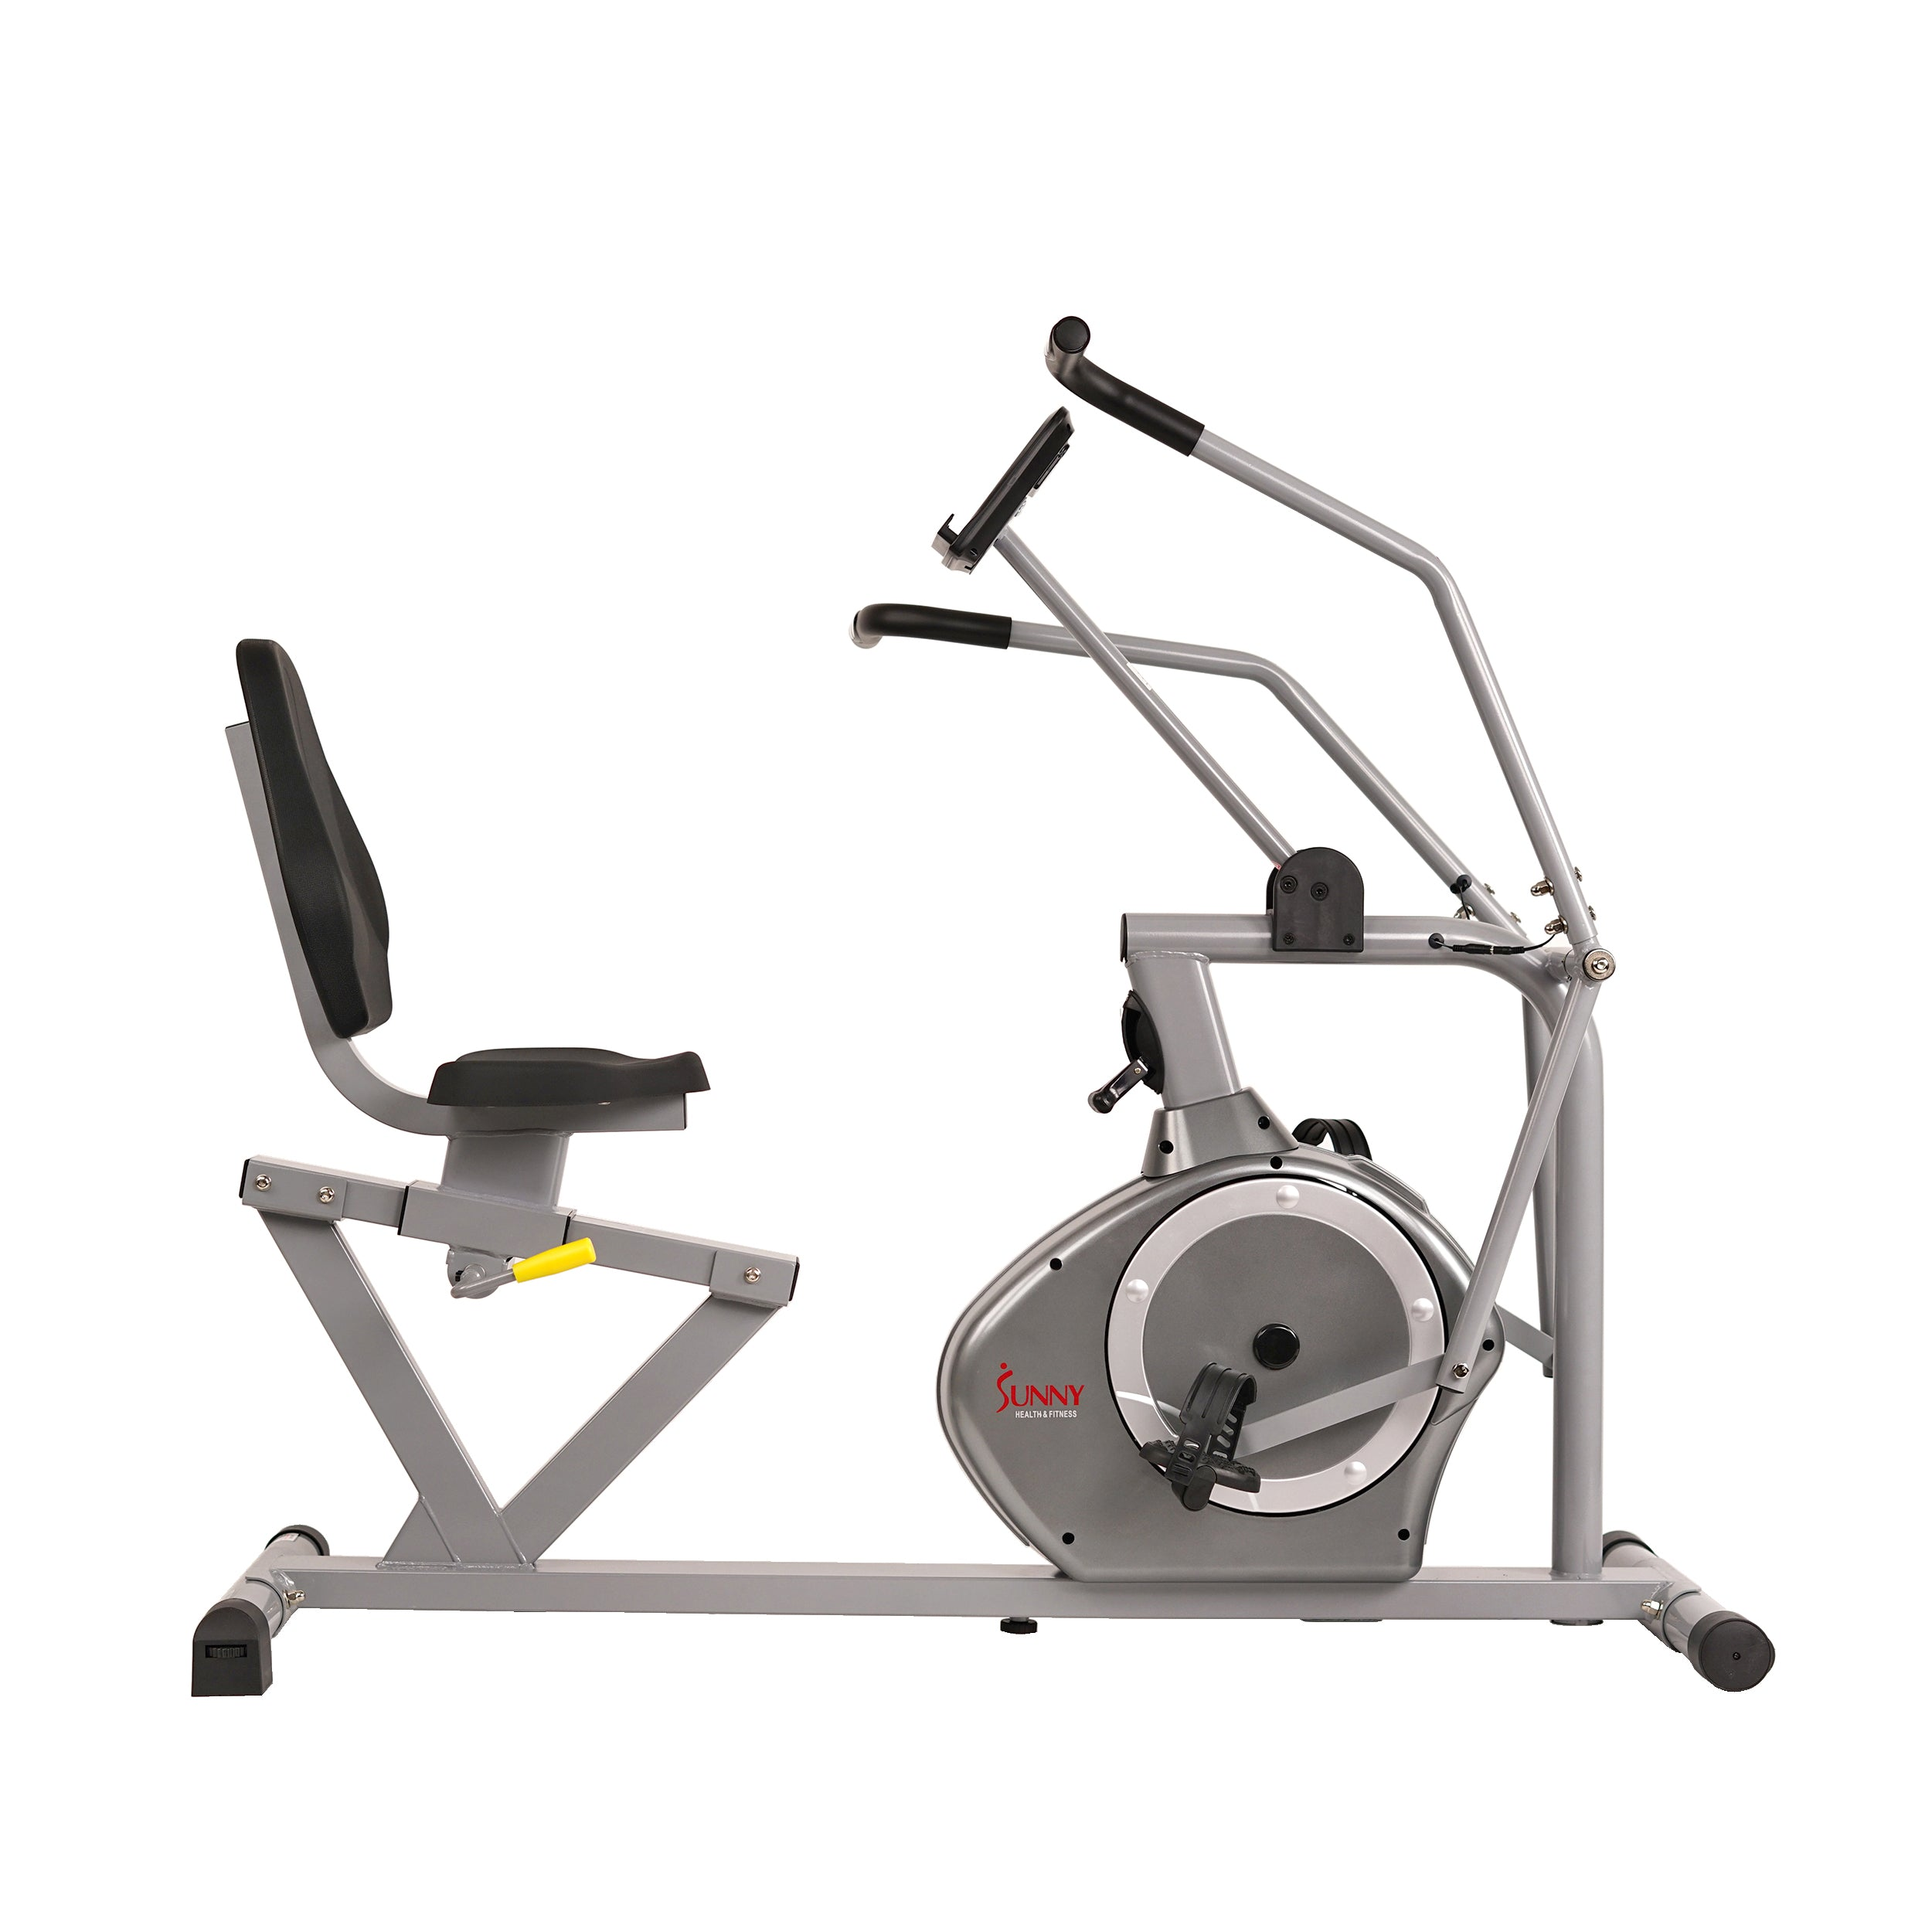 sunny-health-fitness-bikes-magnetic-recumbent-exercise-bike-350lb-high-weight-capacity-arm-exercisers-monitor-pulse-rate-SF-RB4708-350lb -weight-cap